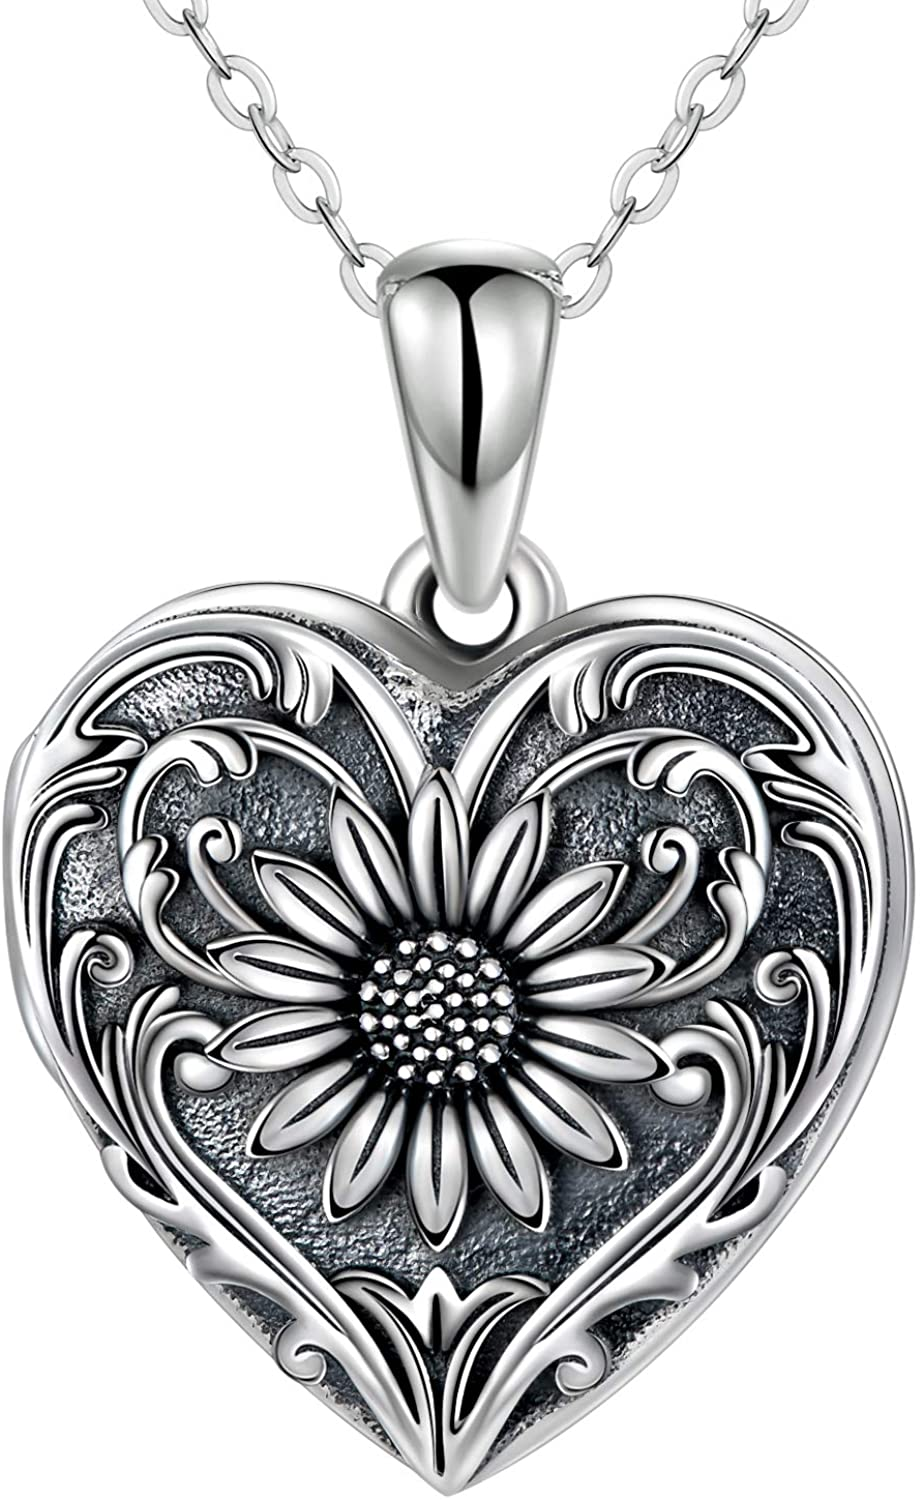 SOULMEET Sunflower Heart Shaped Locket Necklace That Holds Picture Photo Keep Someone Near to You Sterling Silver Custom Jewelry Personalized Locket Necklace